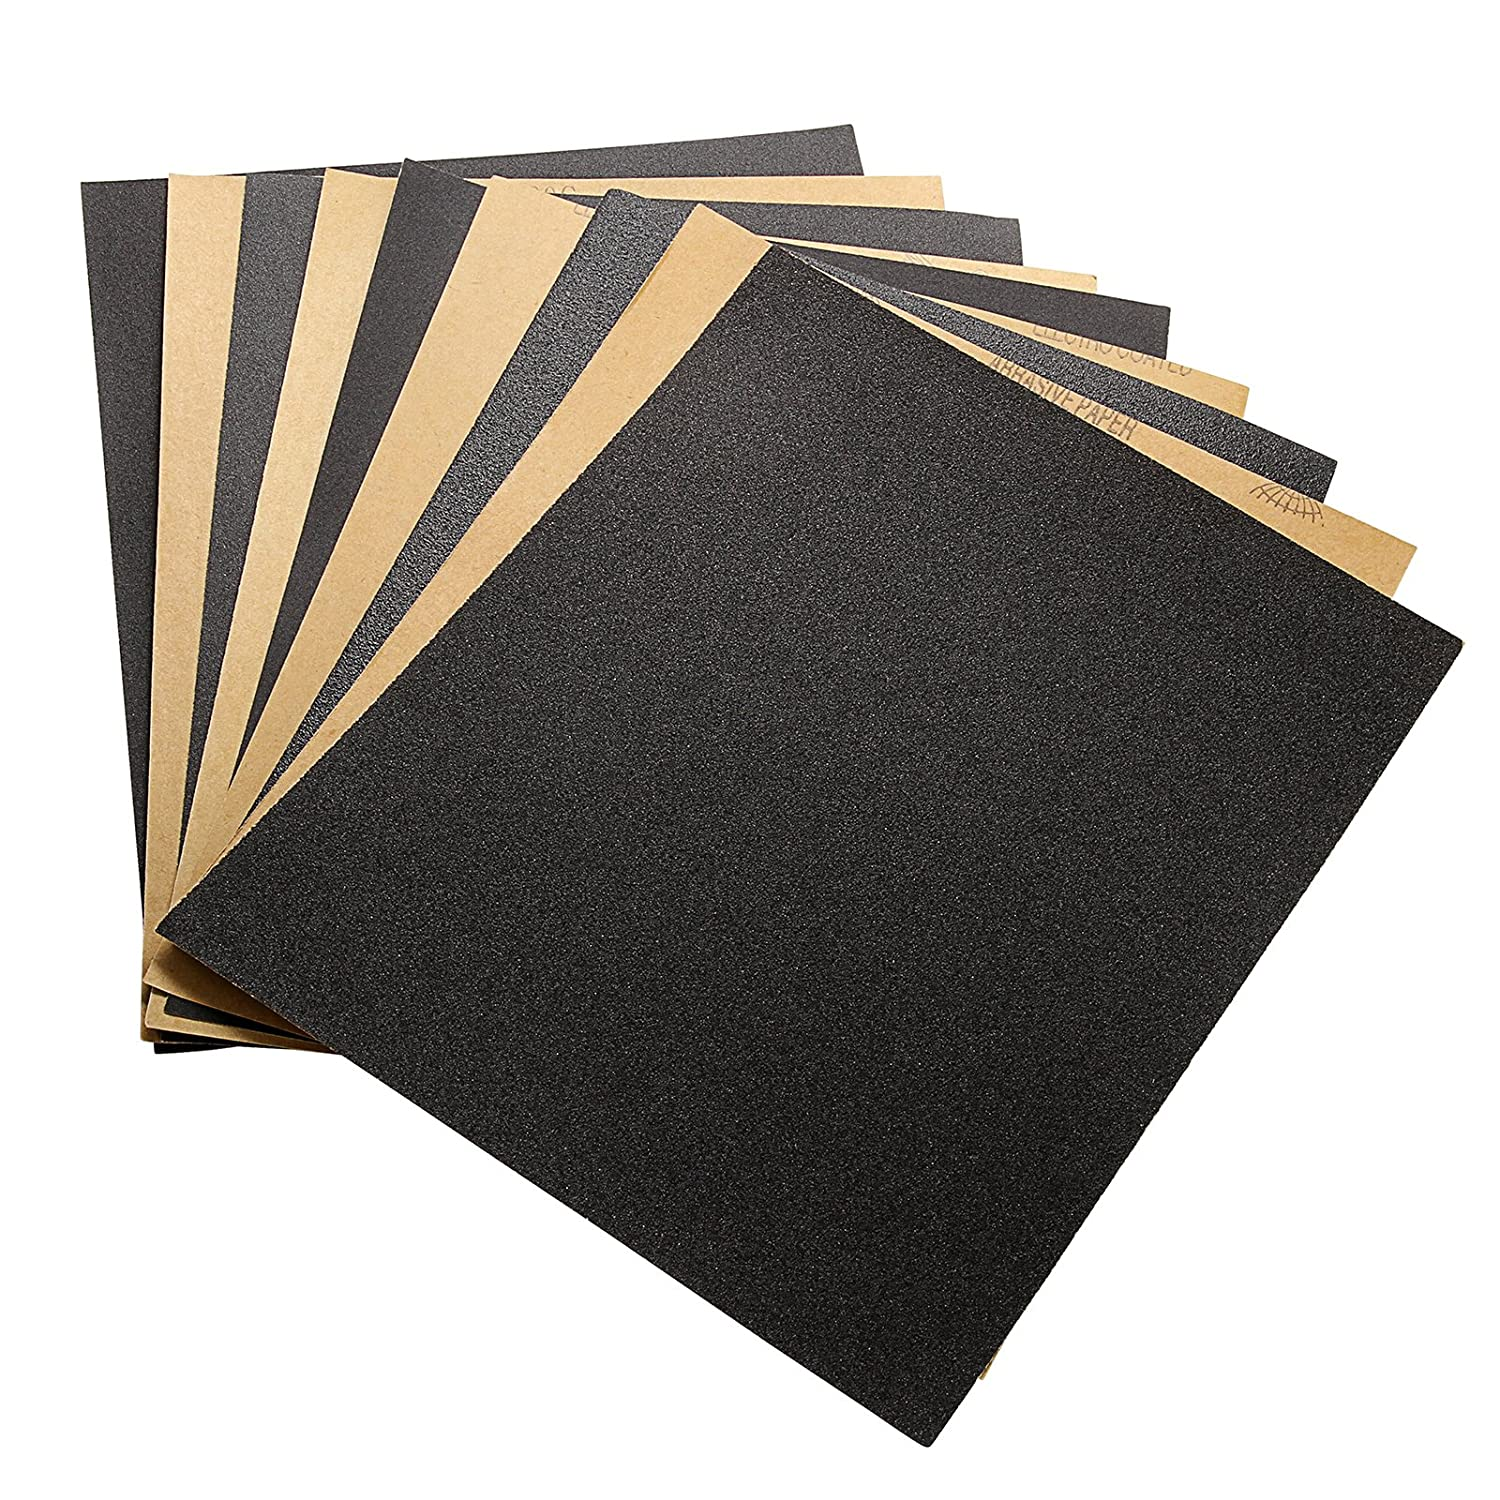 60 To 2000 Assorted Grit Sandpaper for Wood Furniture Finishing, Metal Sanding and Automotive Polishing, Wet or Dry Sanding, 9 x 11 Inch, 34 Sheet